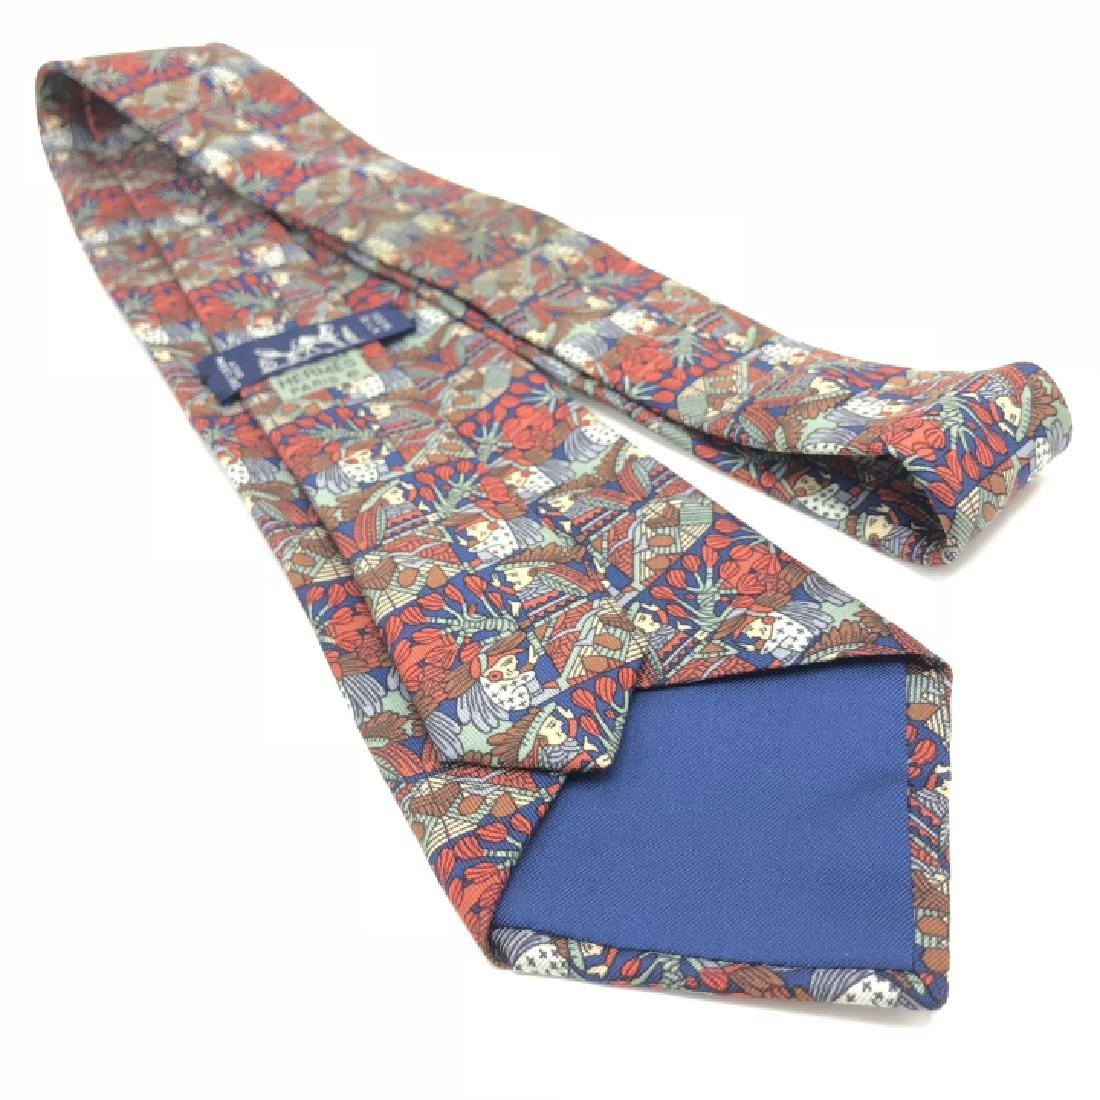 Vintage Authentic Hermes Graphic Men's Tie - 2